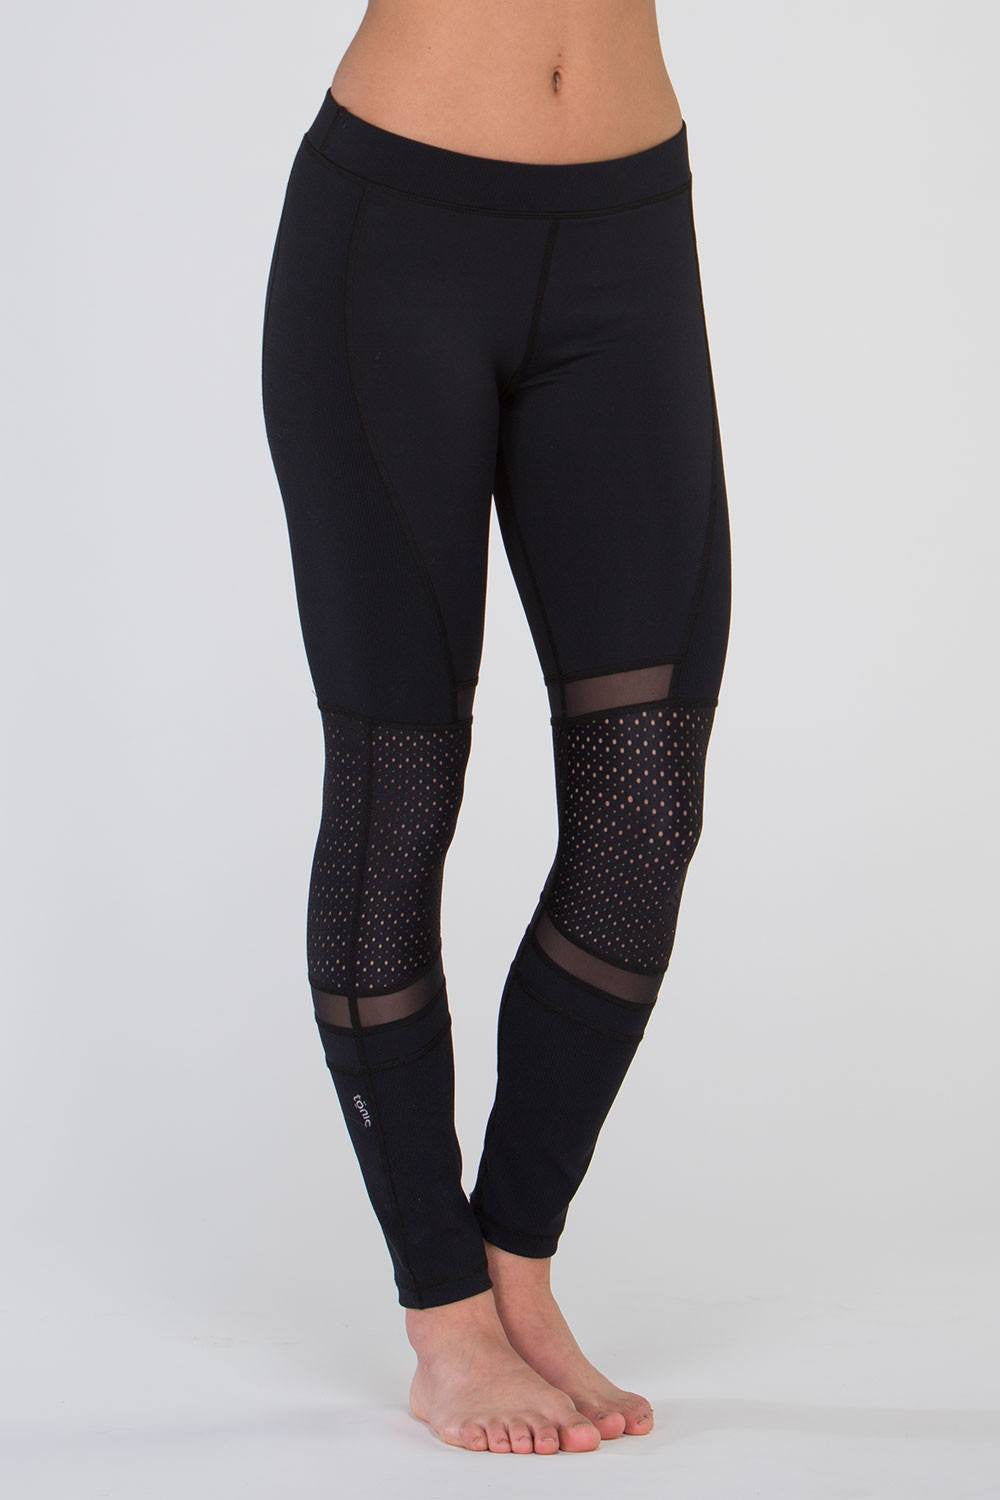 Stand Strong Legging - Tonic Lifestyle Apparel